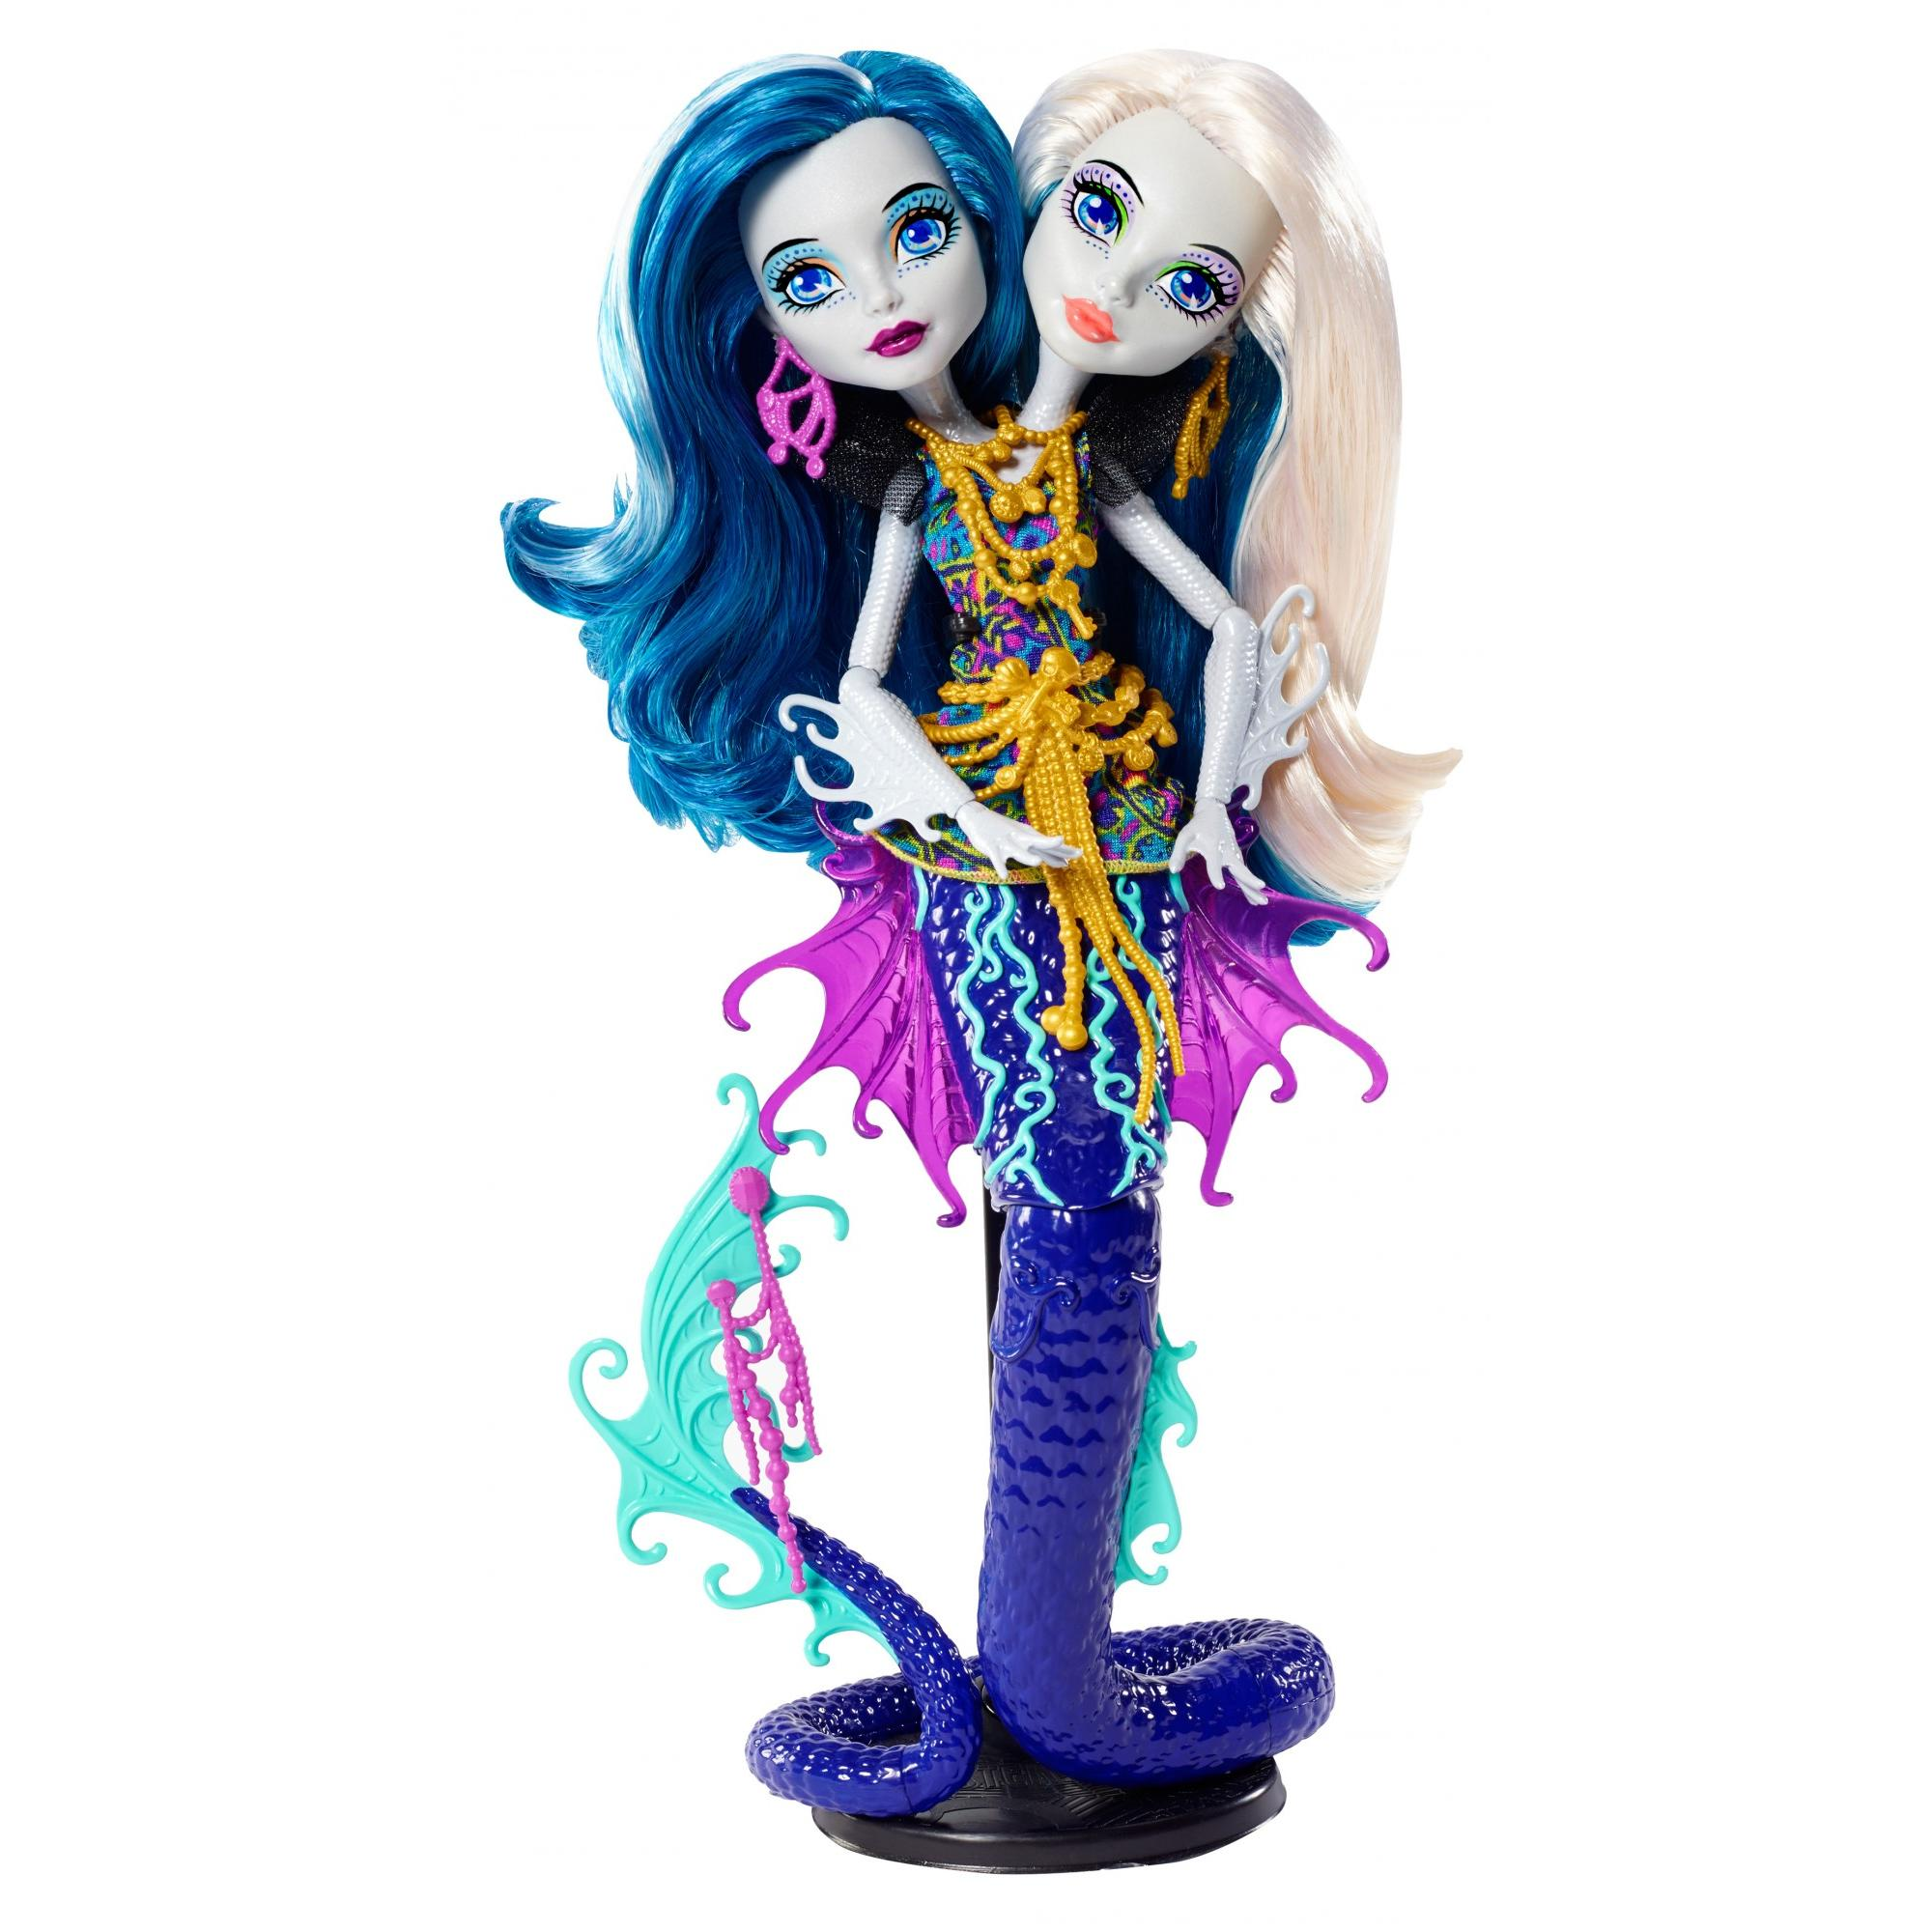 Monster High Great Scarrier Reef Peri Pearl Serpent Doll by Mattel